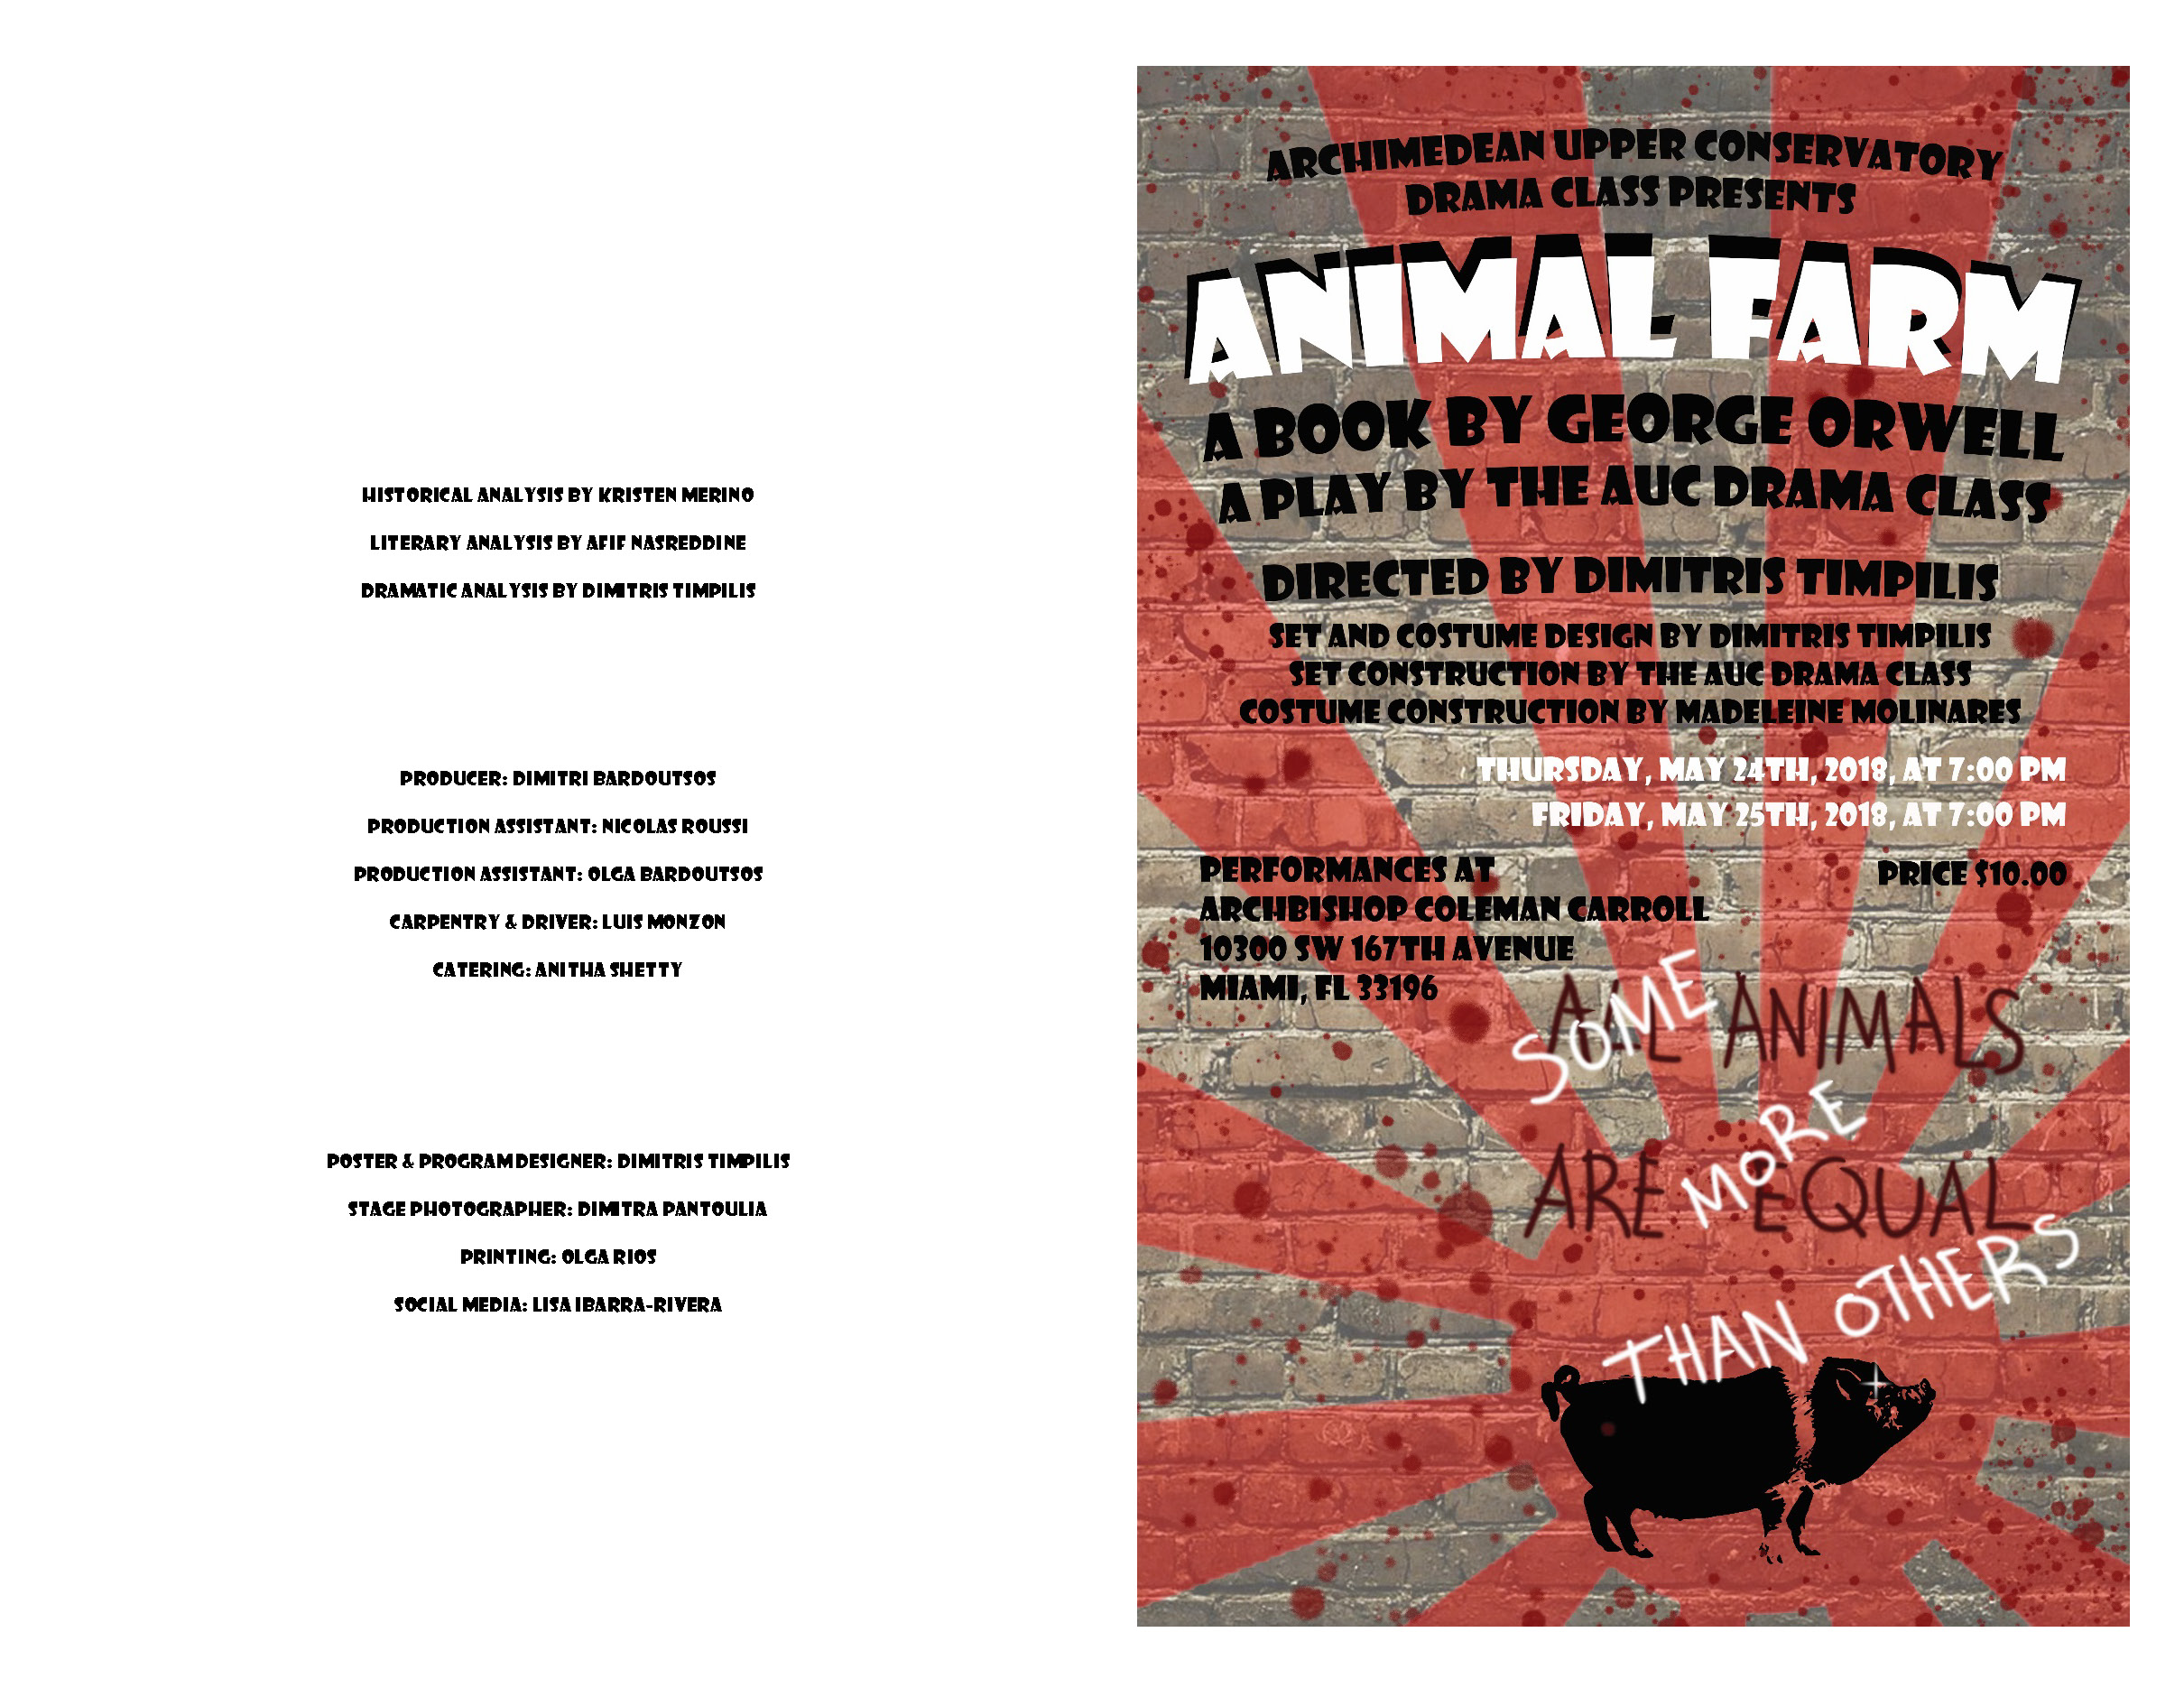 2018 Animal Farm adaptation of the same titled book by George Orwell Program A.jpg